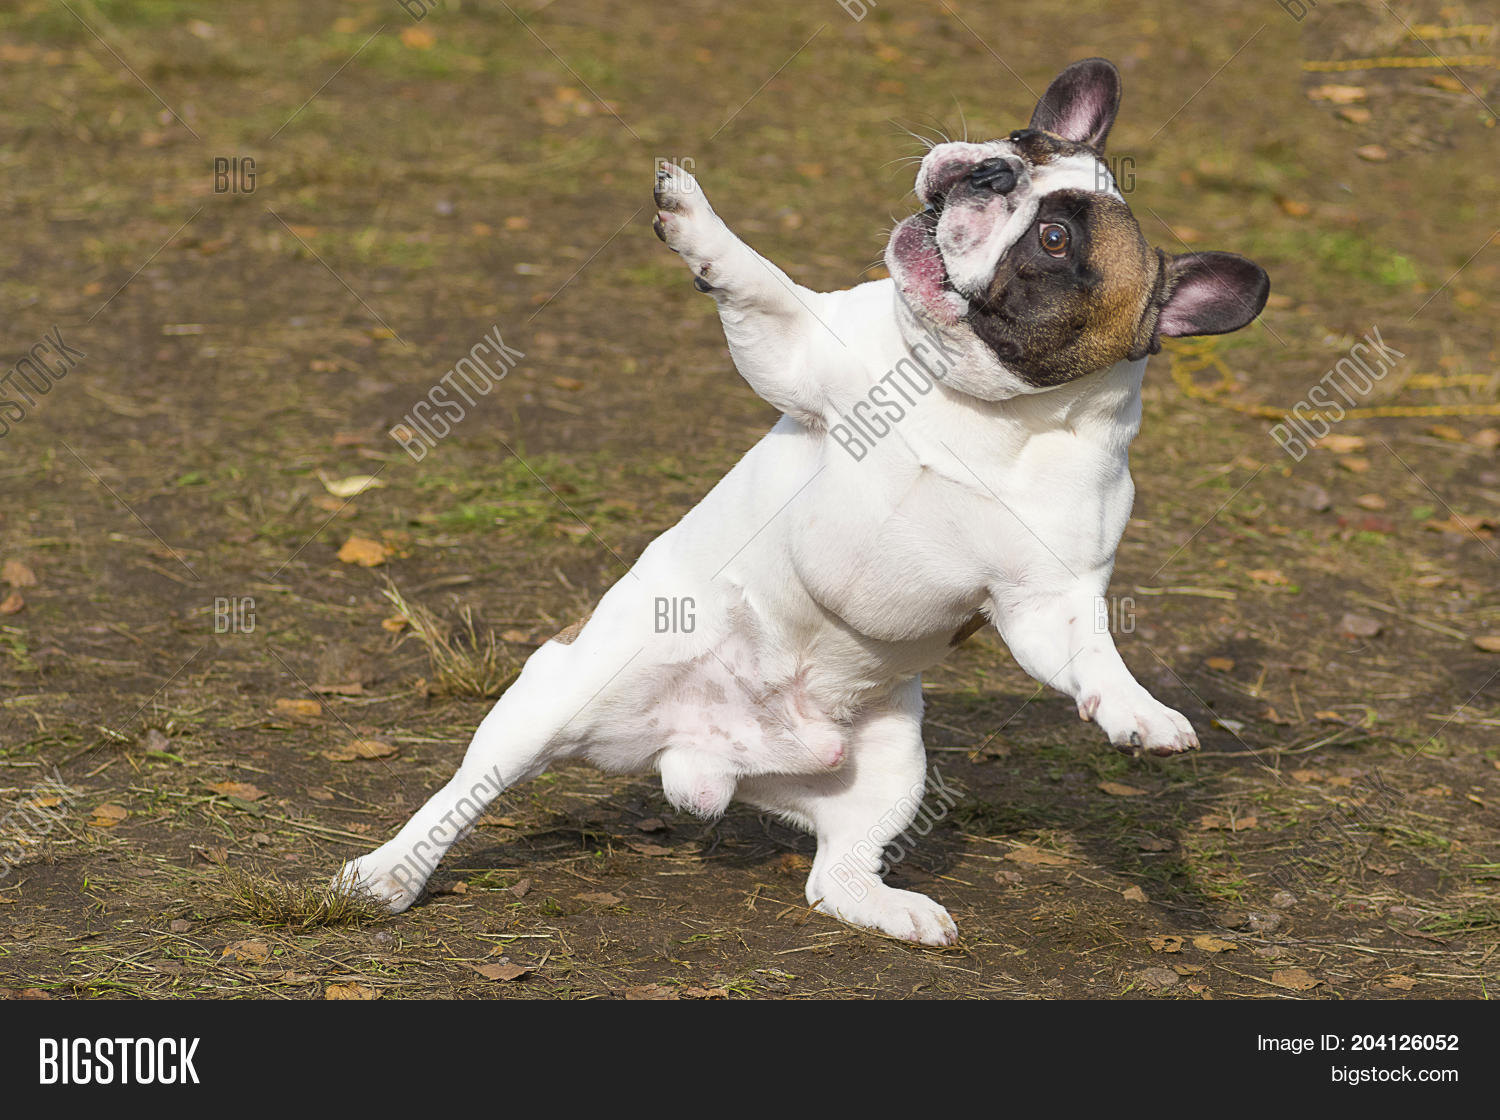 English Bulldog Dancing Dog Humor Stands On Its Hind Legs Spreads Out Its Front